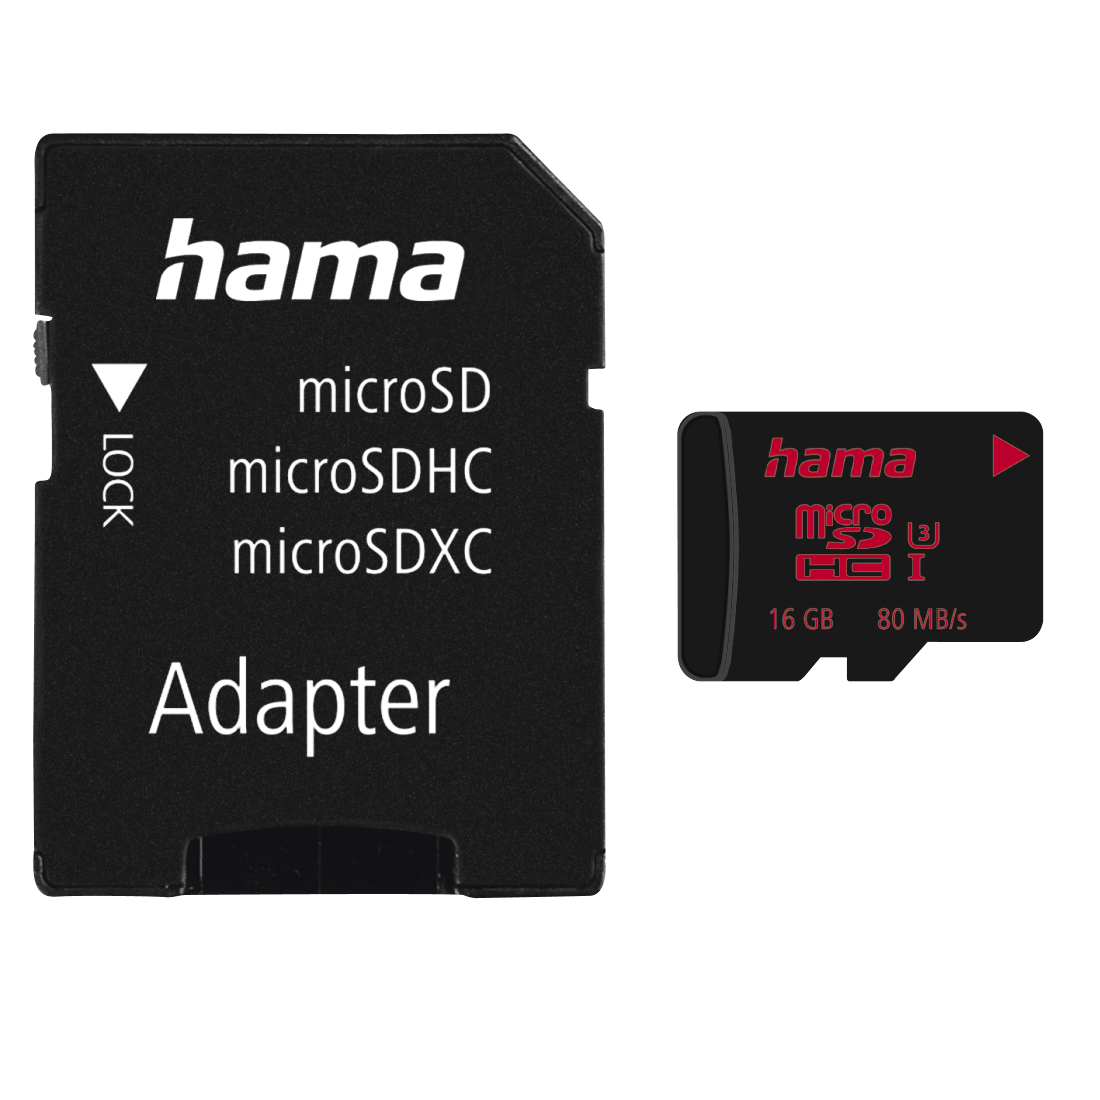 abx High-Res Image - Hama, Carte microSDHC 16GB UHS Speed Class 3 UHS-I 80MB/s +adapat./mobile